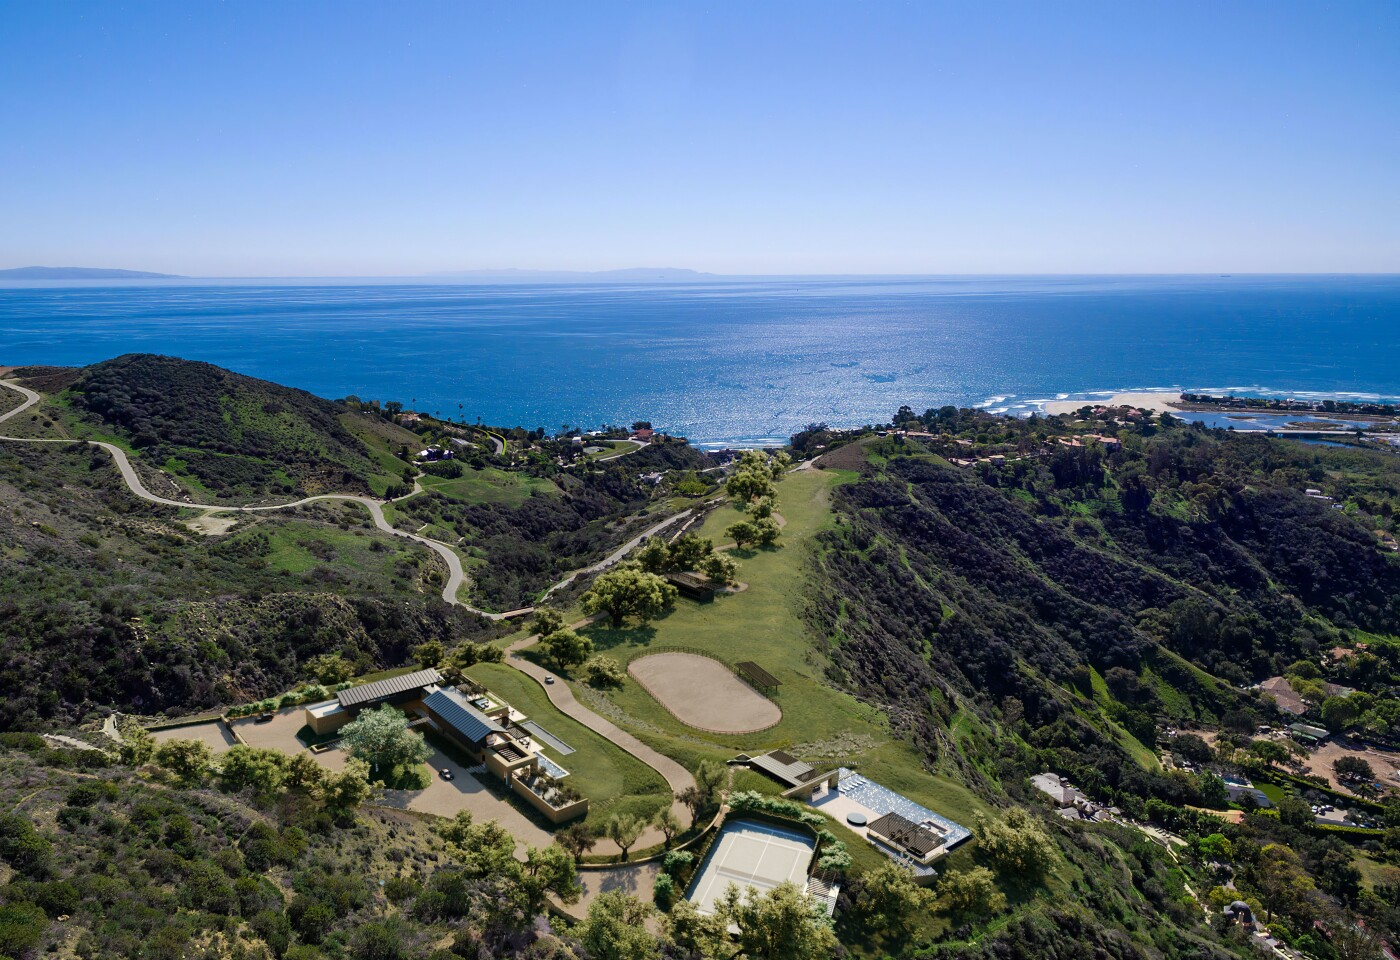 Spanning 38 acres overlooking the ocean, the undeveloped estate includes approved plans for a 12,000-square-foot modern mansion.